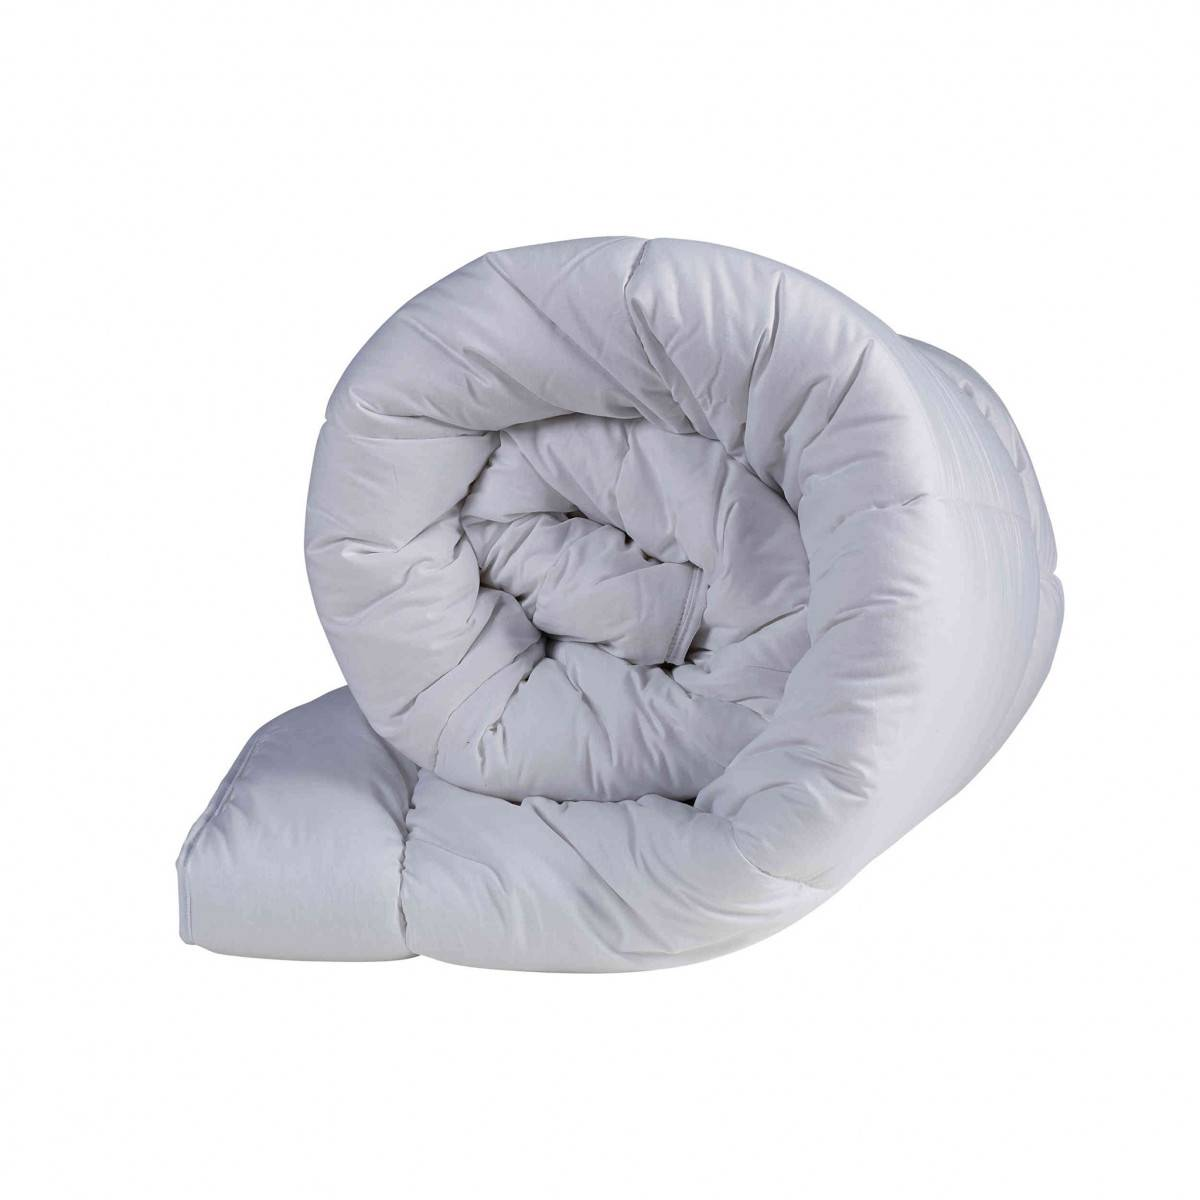 Someo Couette hiver anti-acariens 600g SOMEO 260x240